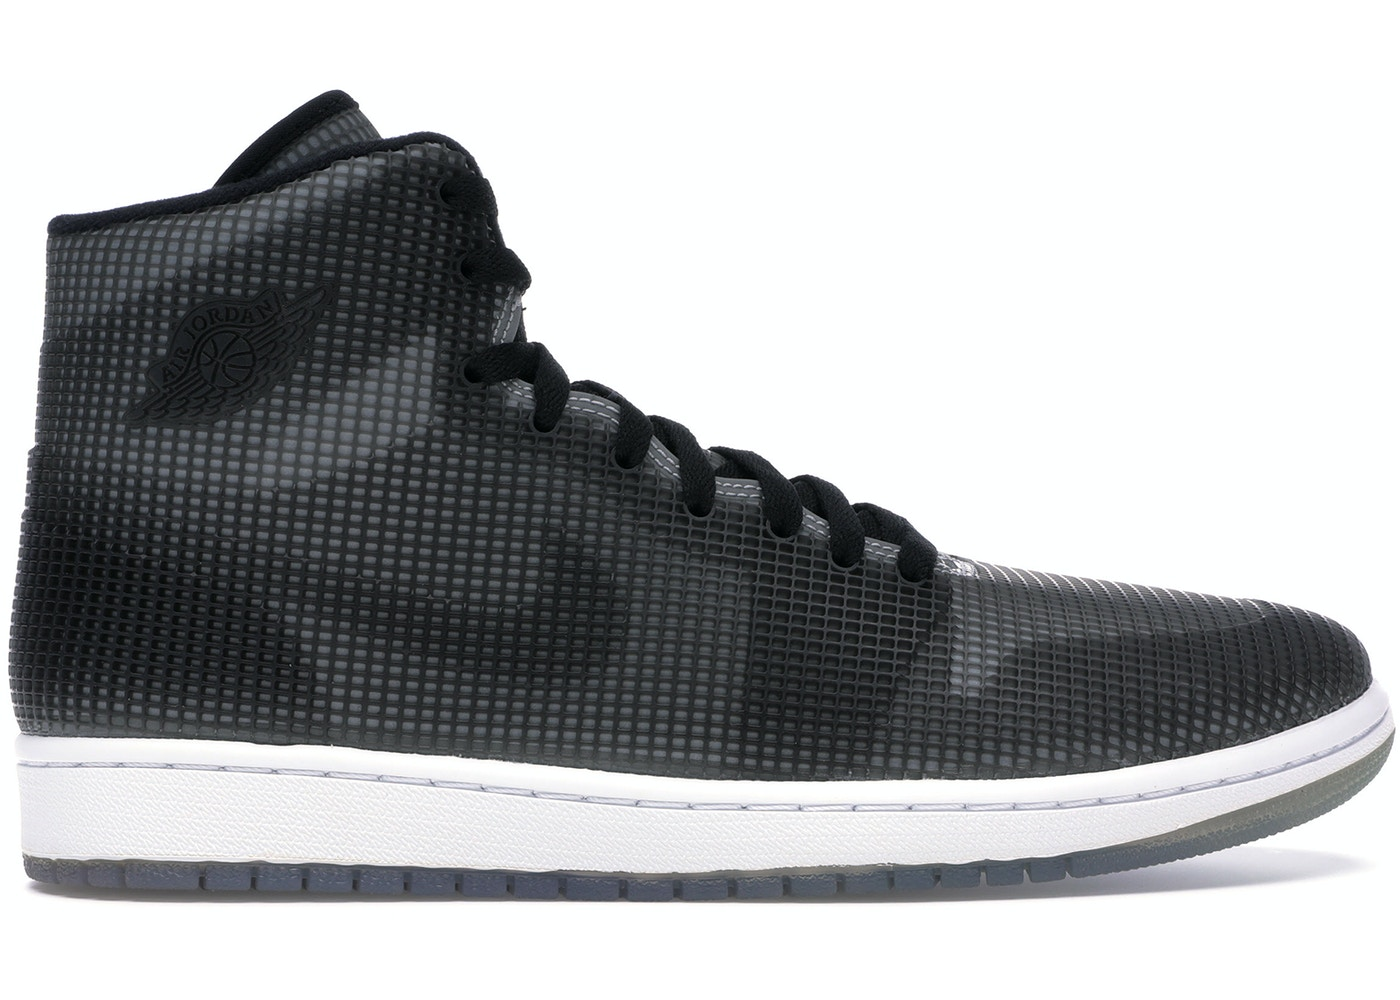 official photos 2def1 2213b Jordan 1 Retro 4lab1 Reflect Silver - 677690-012